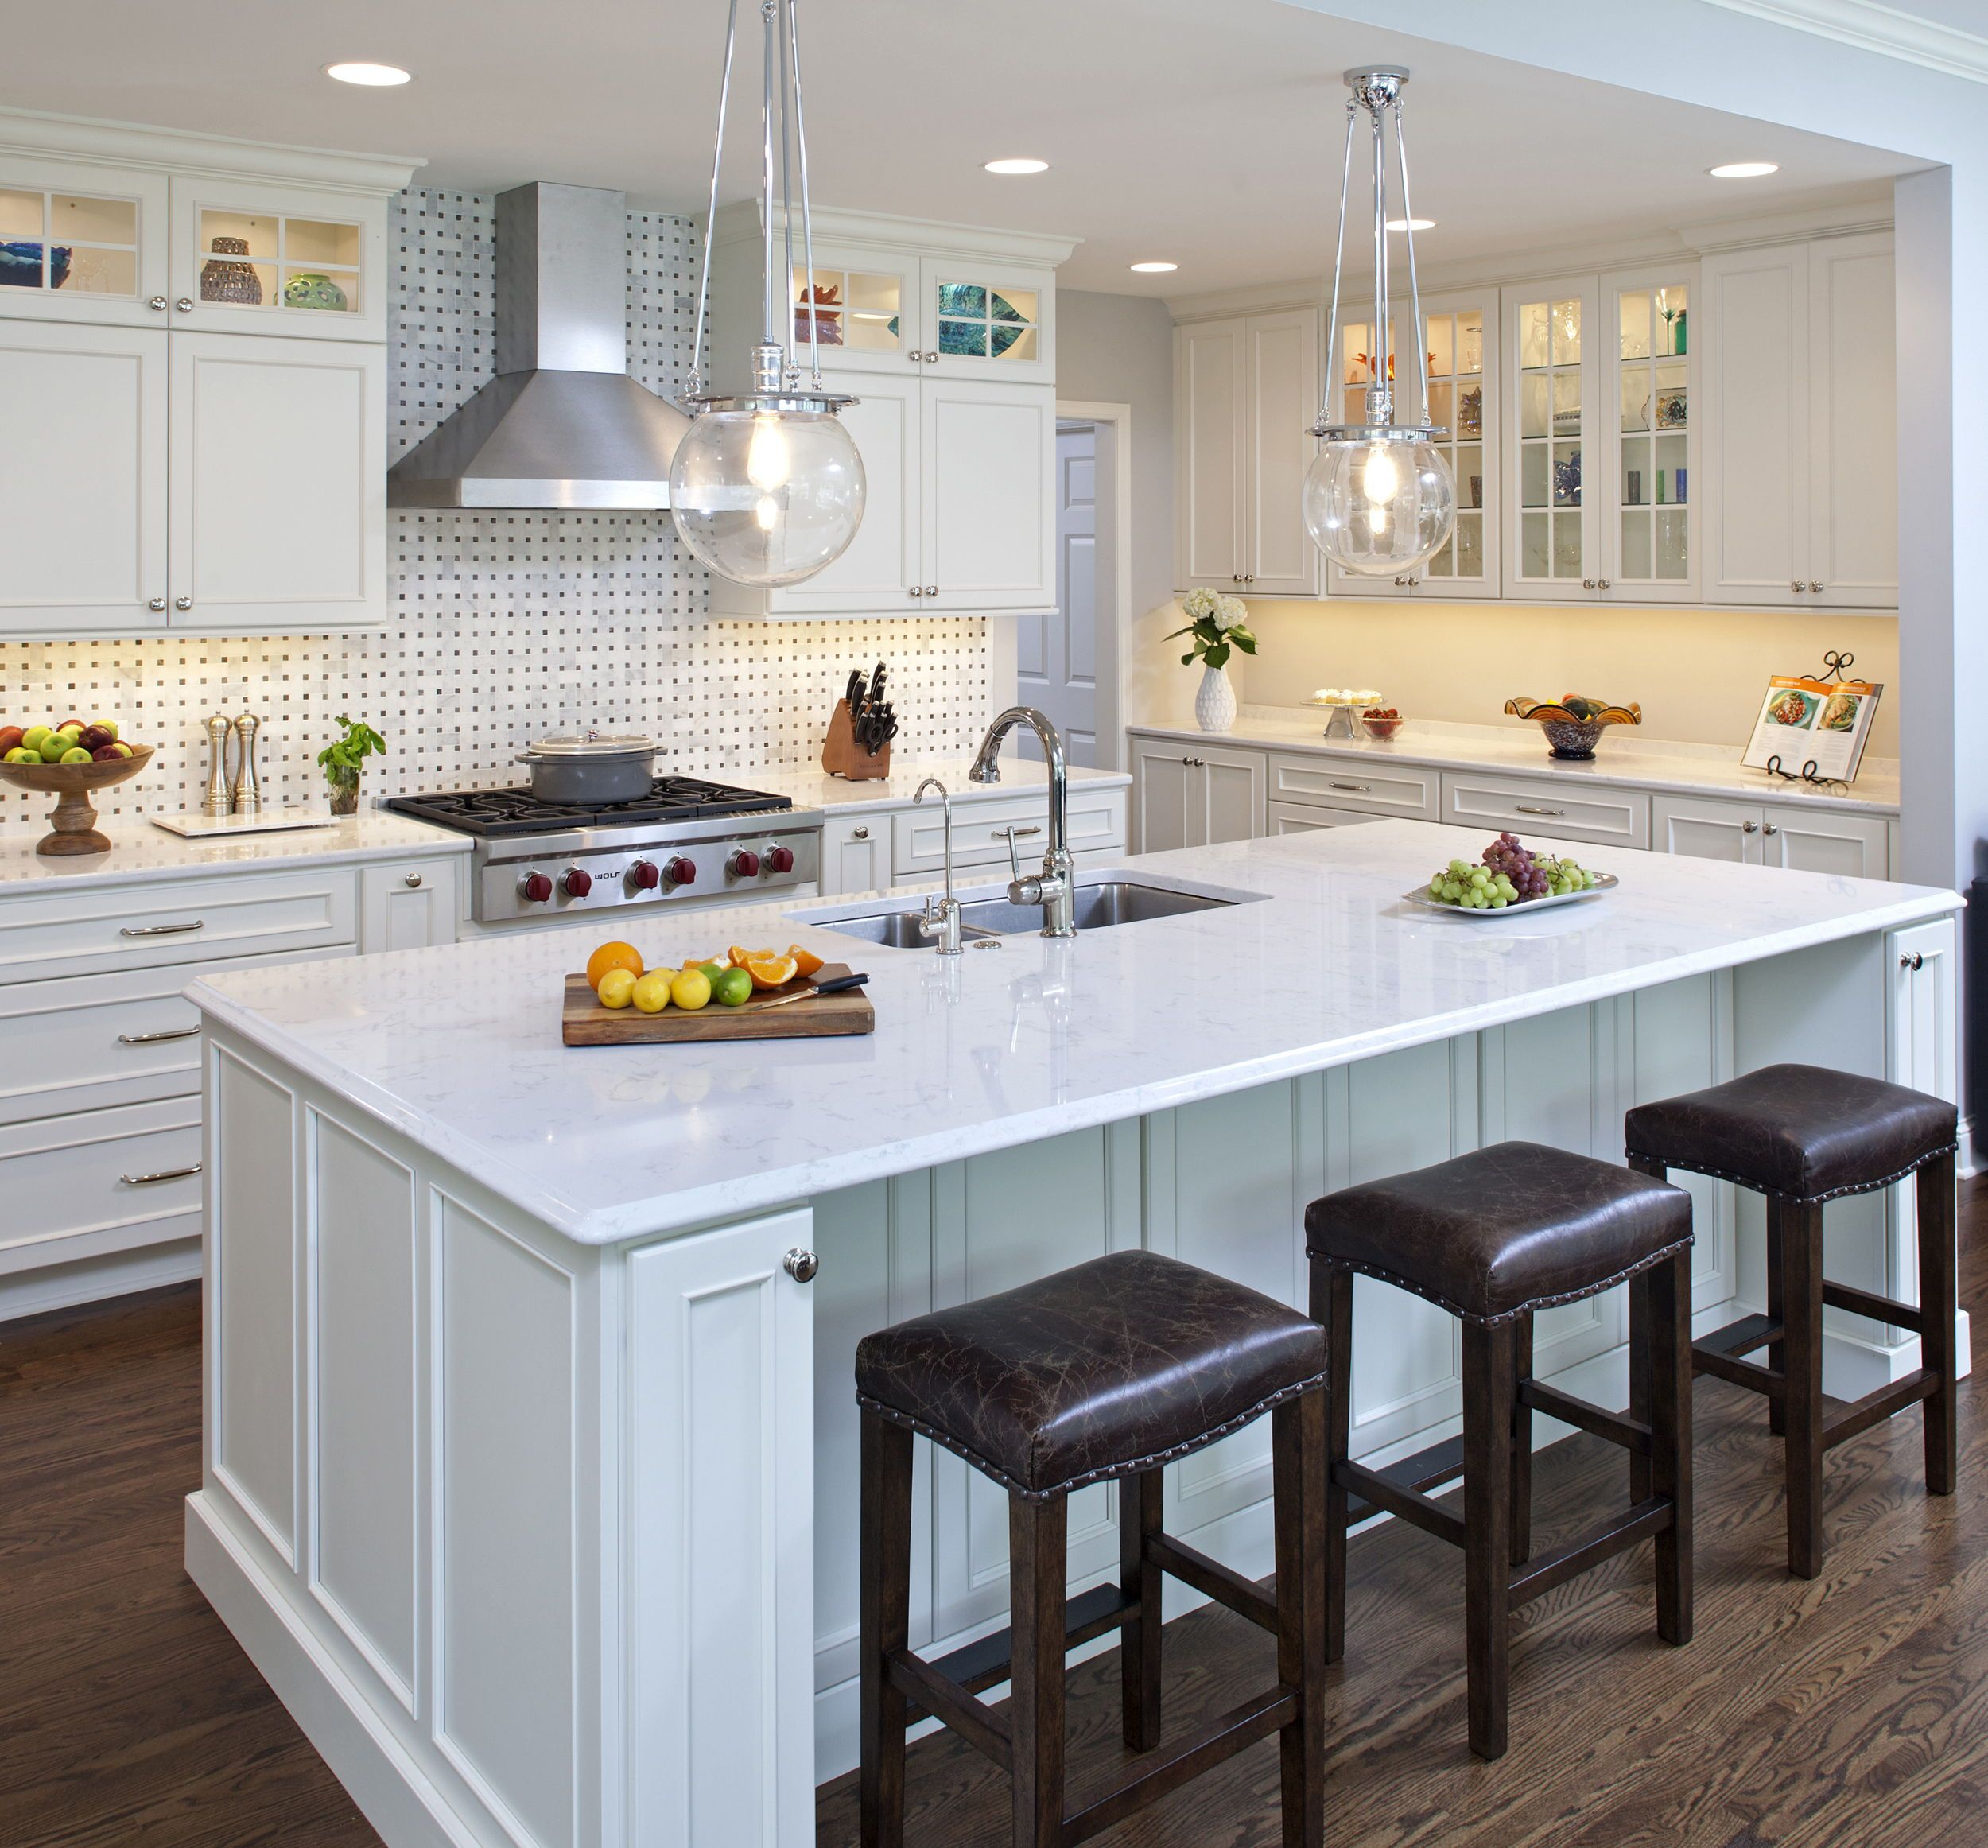 Bright White and Fun Kitchen Design This new construction home by